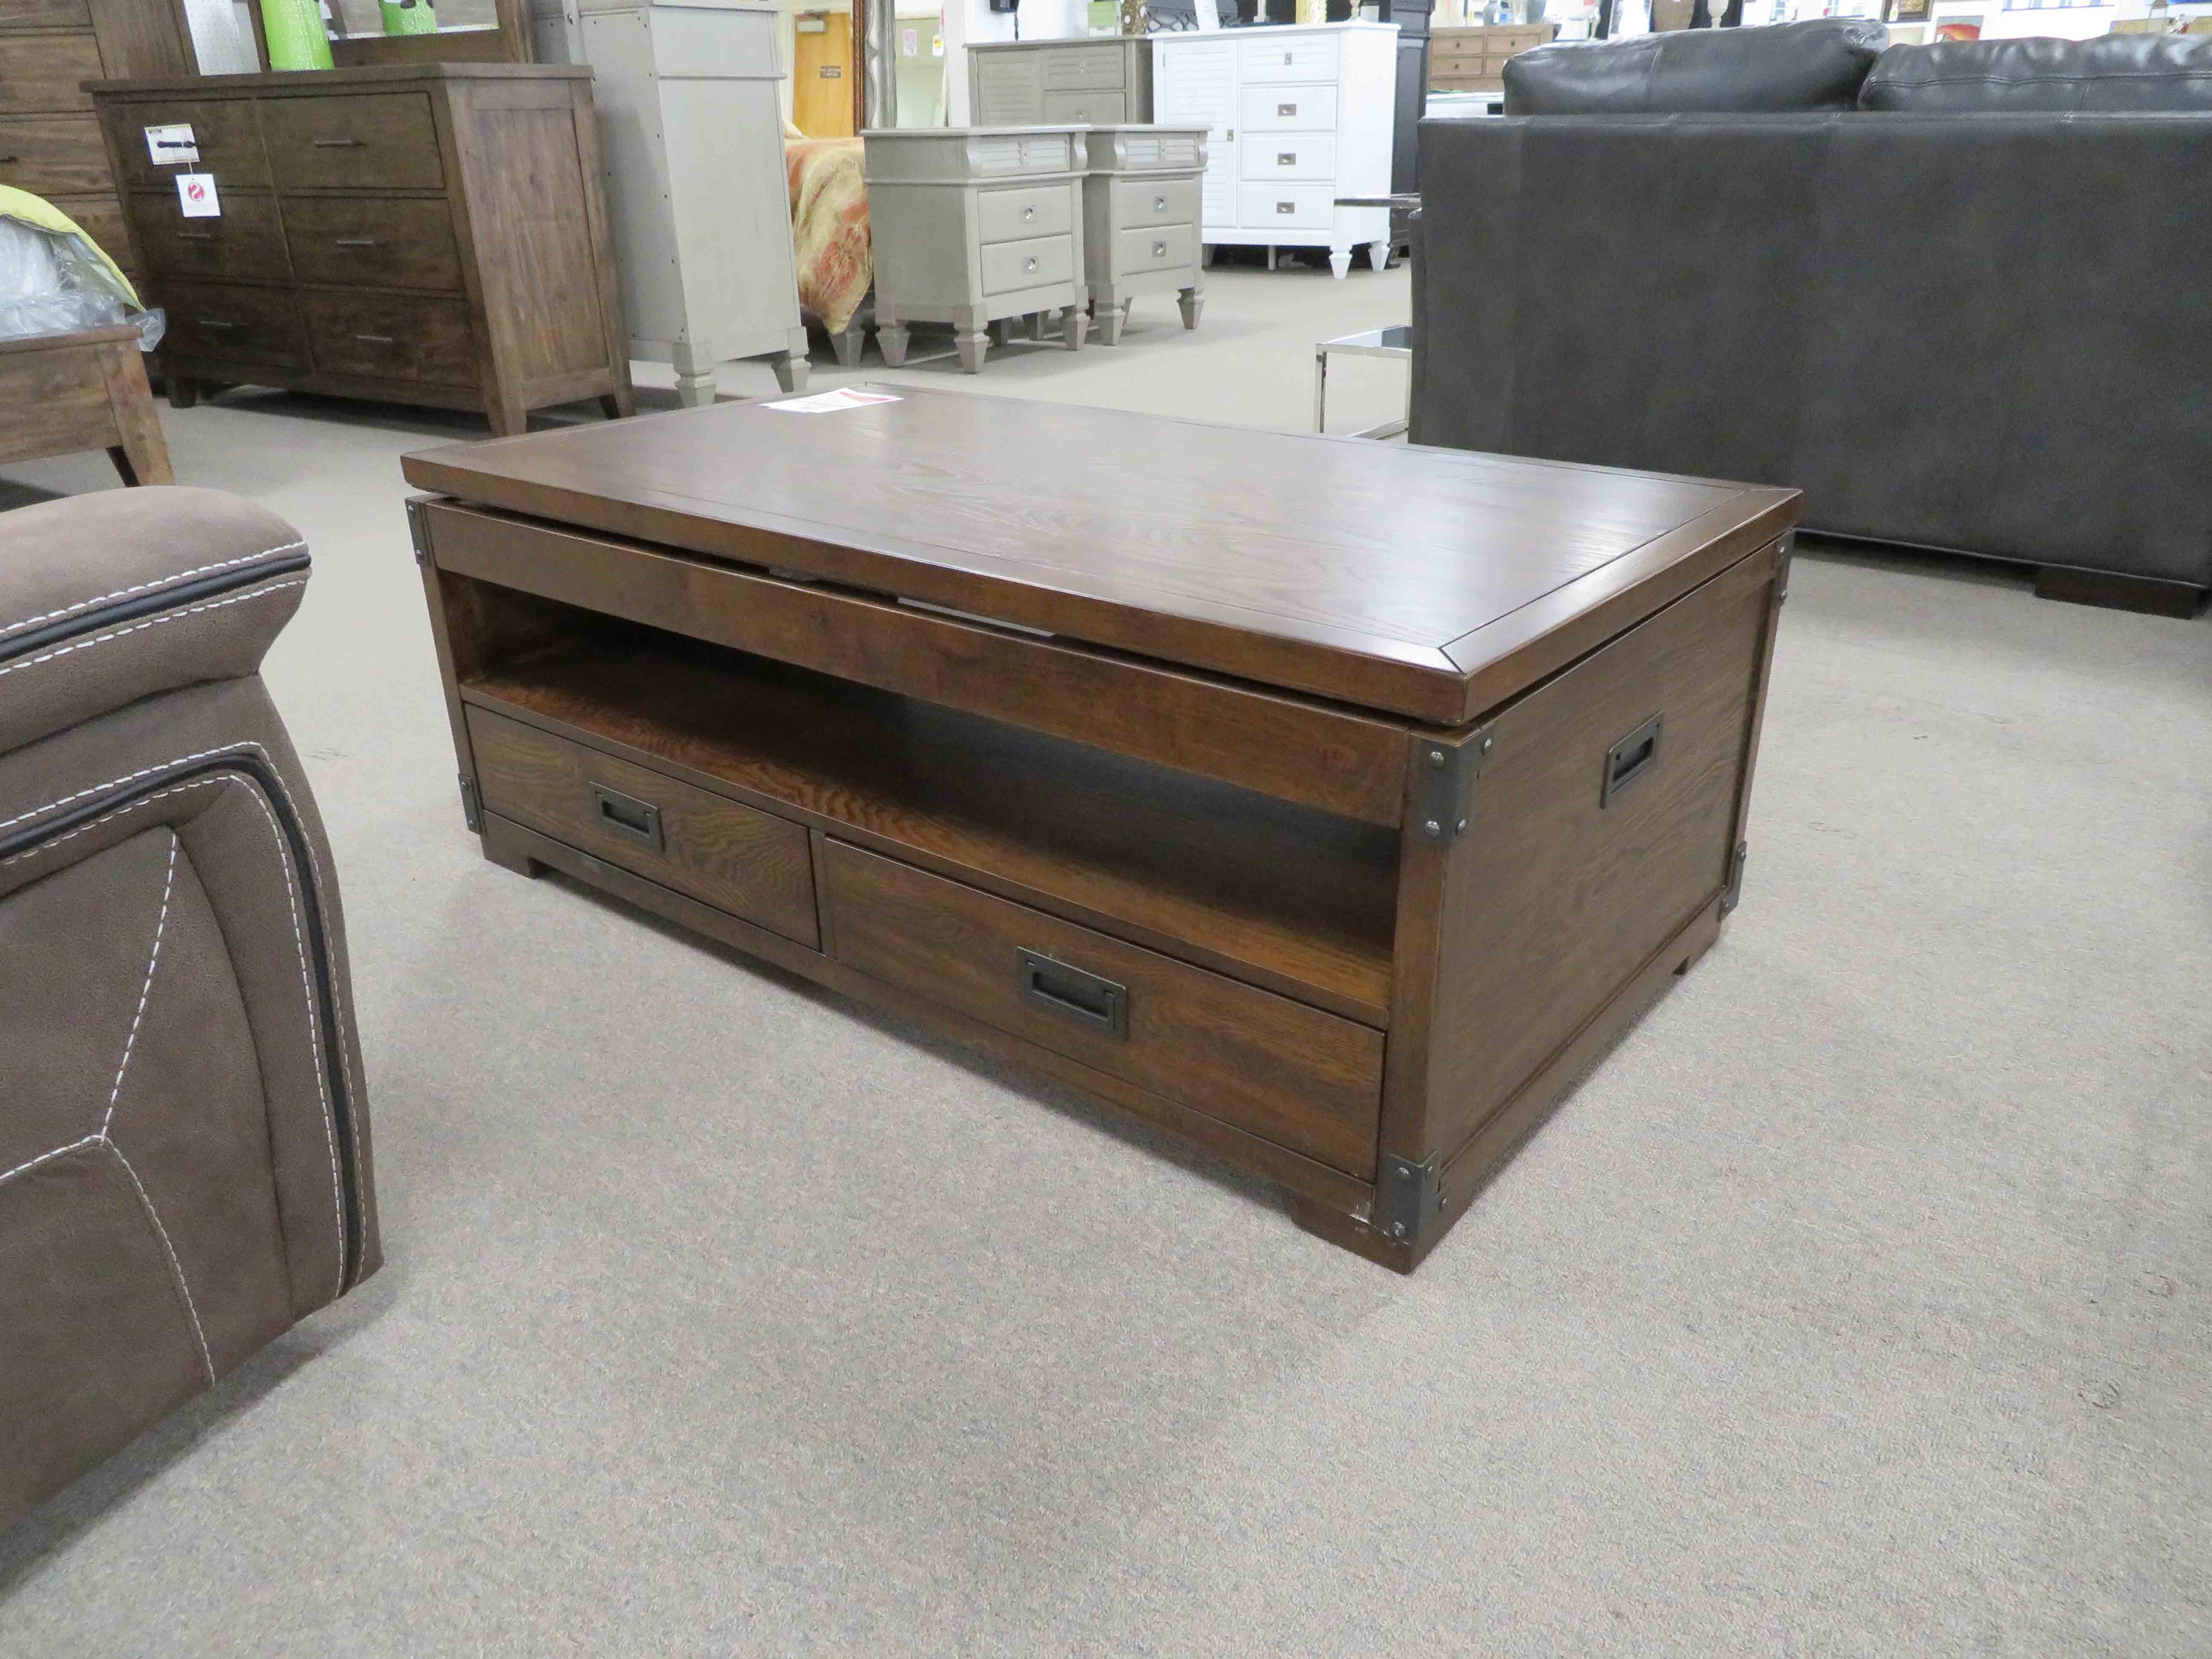 Fashionable Market Lift Top Cocktail Tables With Lift Top Cherry Cocktail Table – Heavner Furniture Market (View 17 of 20)